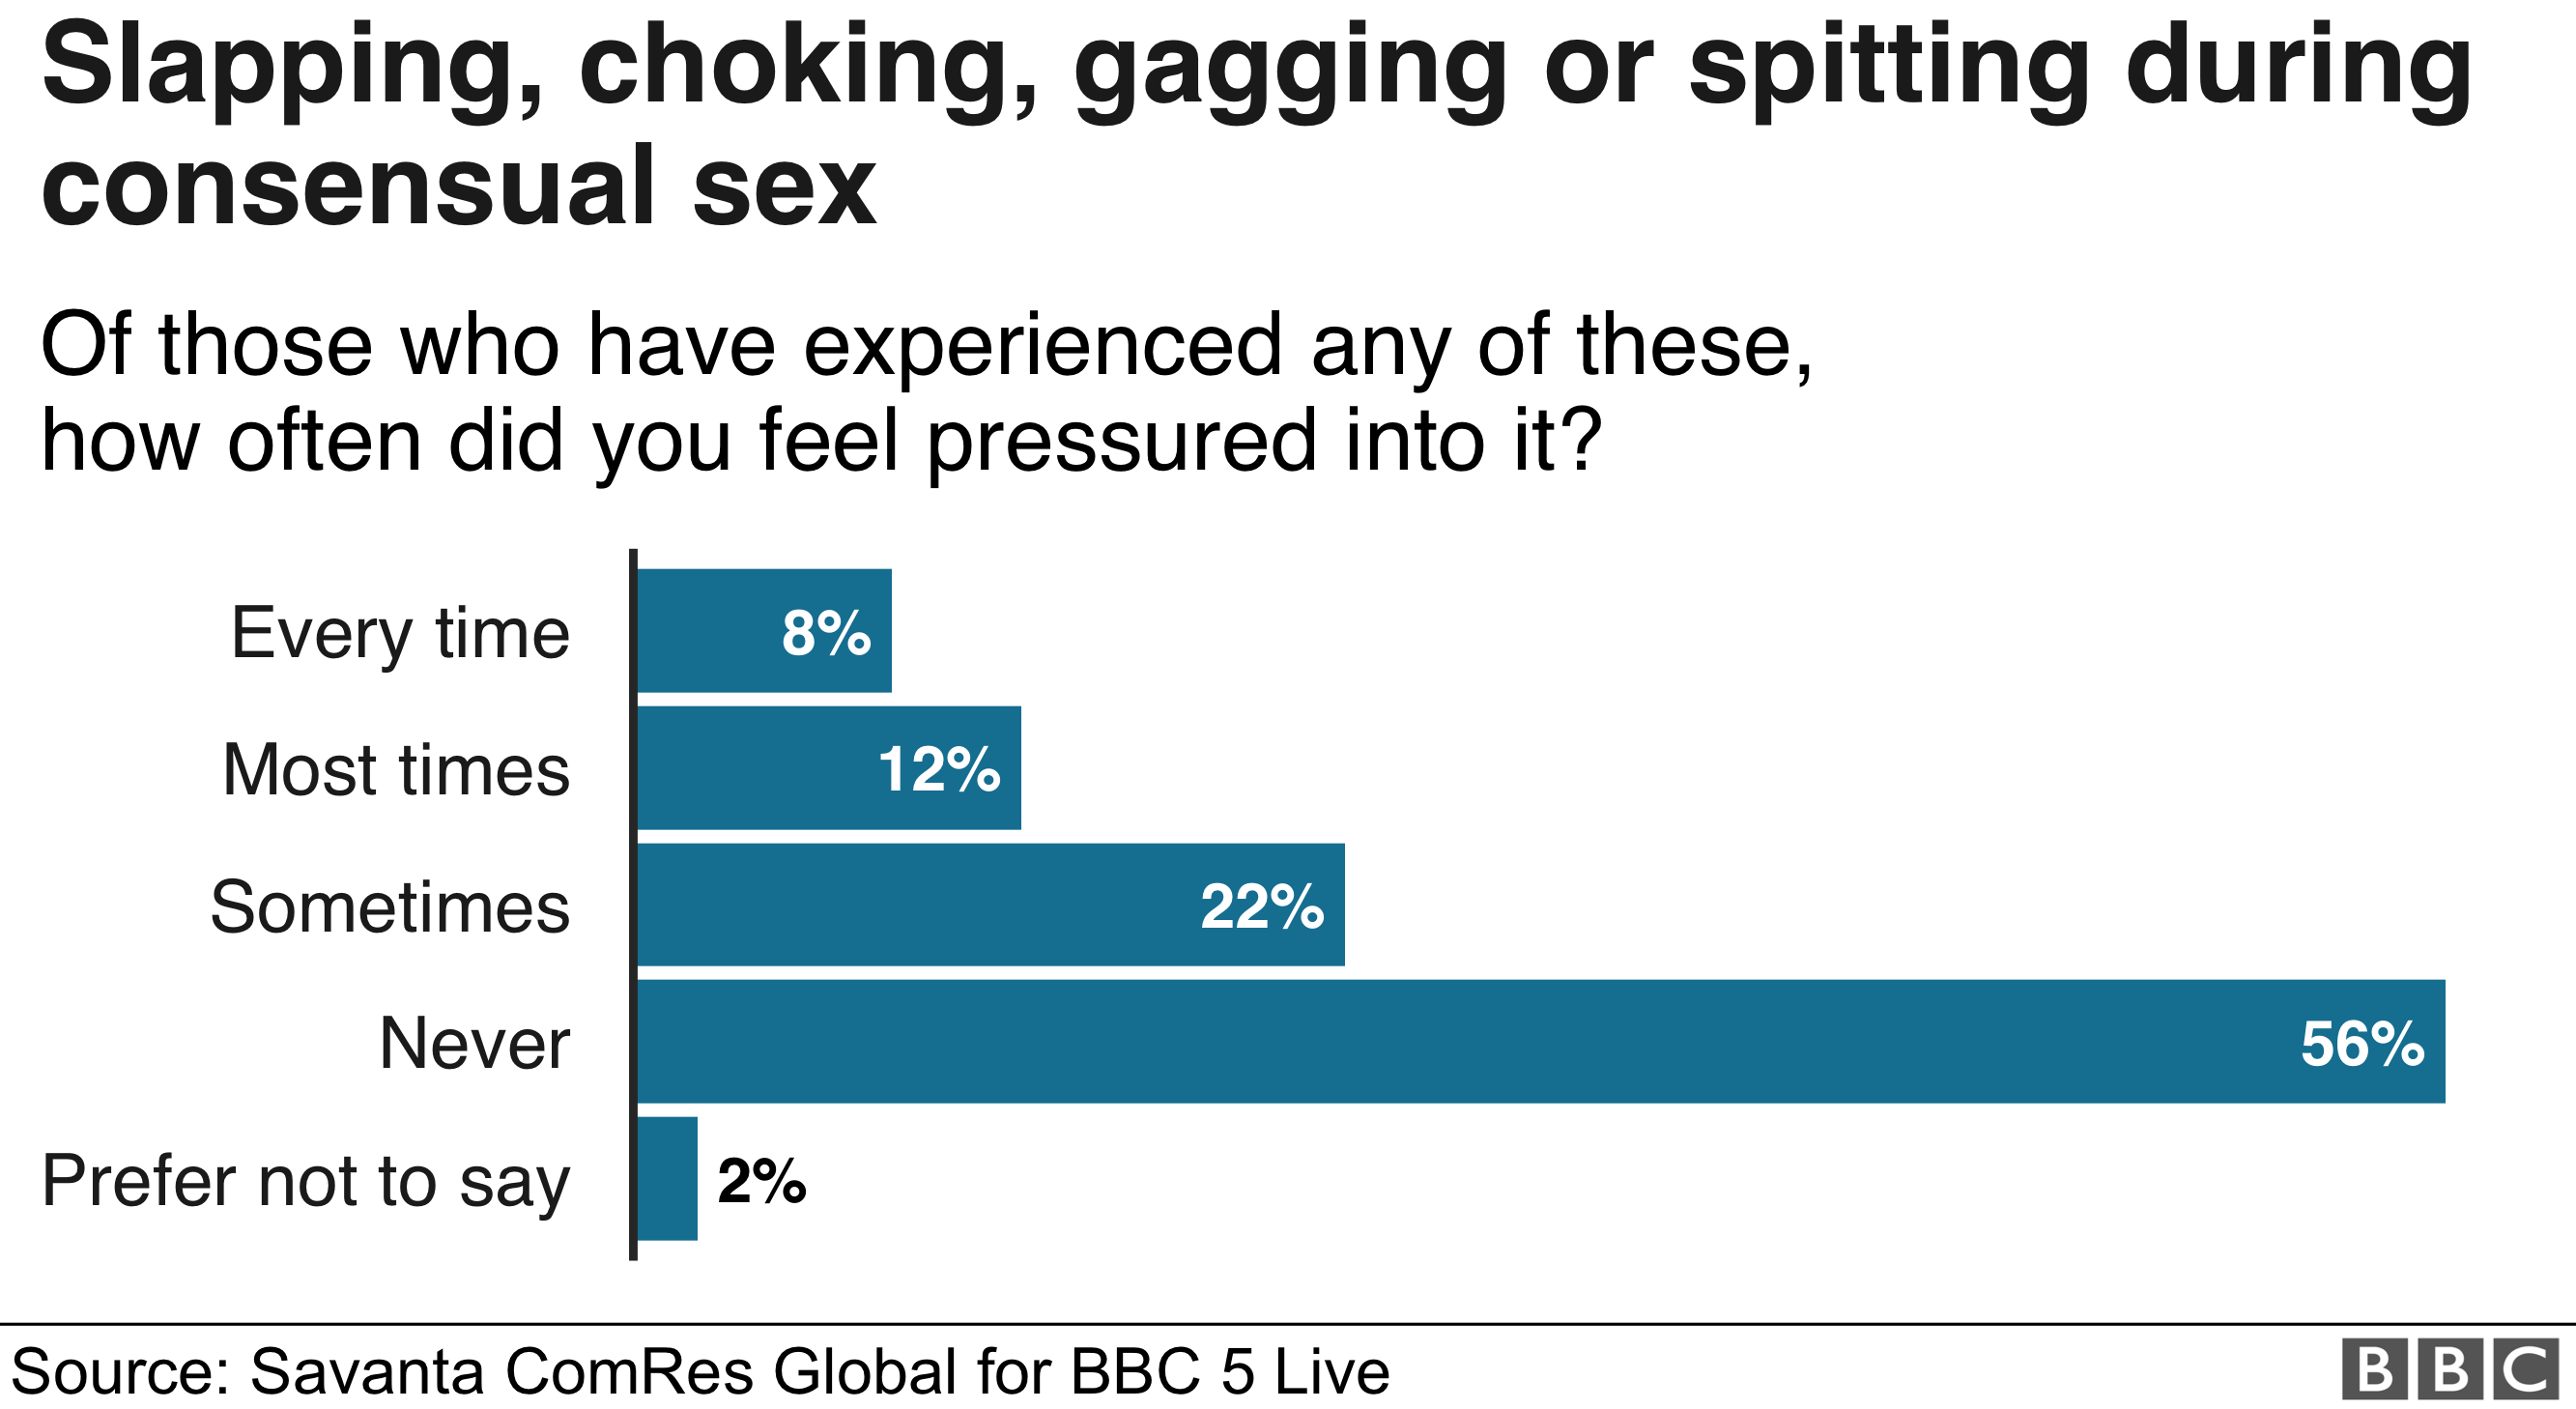 Chart showing how many women said they felt pressured into acts of violence.